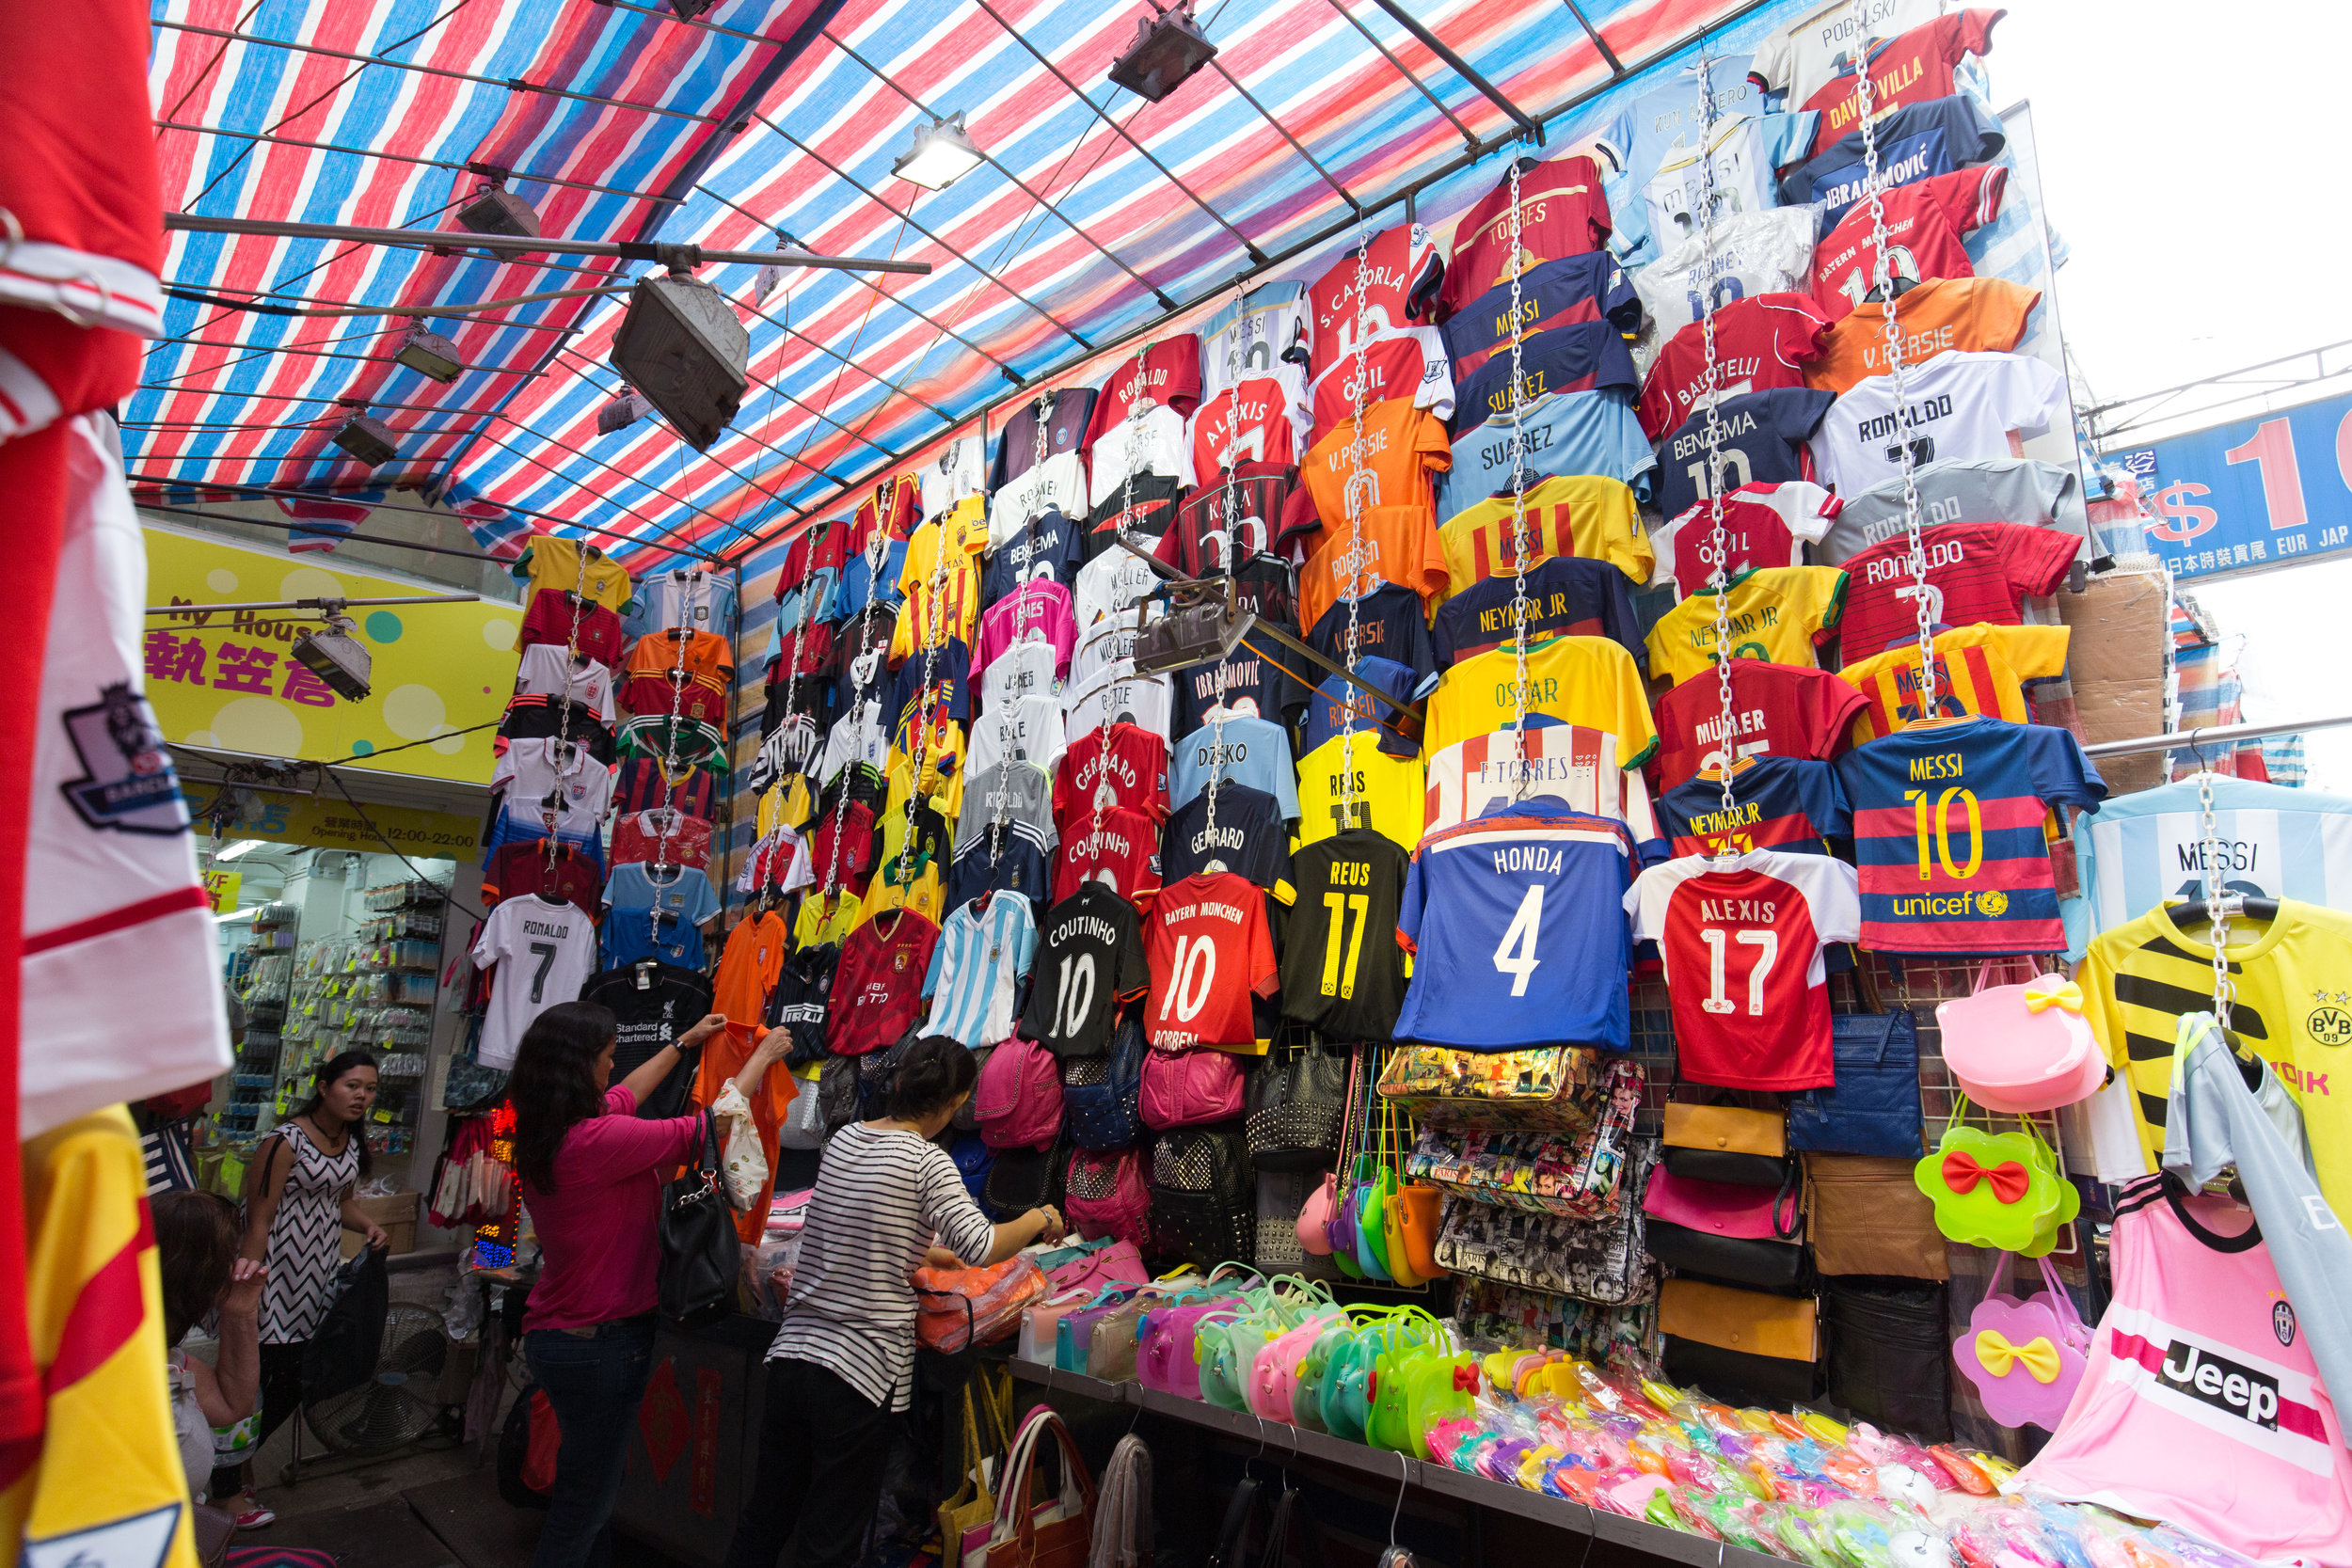 Team jerseys for sale at the Fa Yuen Street Market in Mongkok, Hong Kong